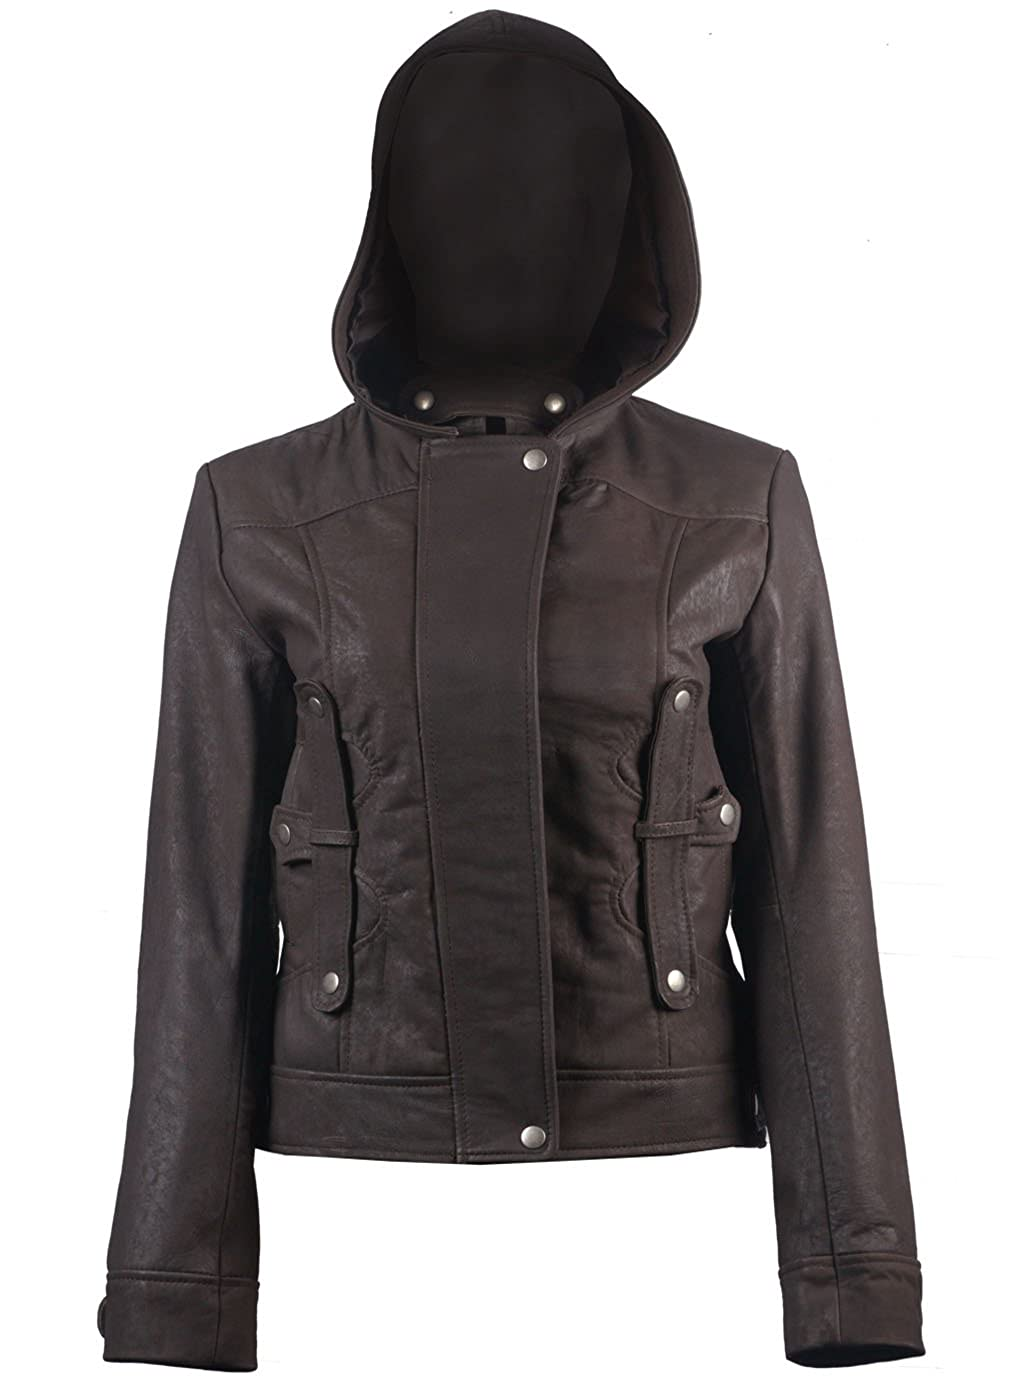 3f80bc0b7 Top 10 wholesale Girls Leather Jacket - Chinabrands.com